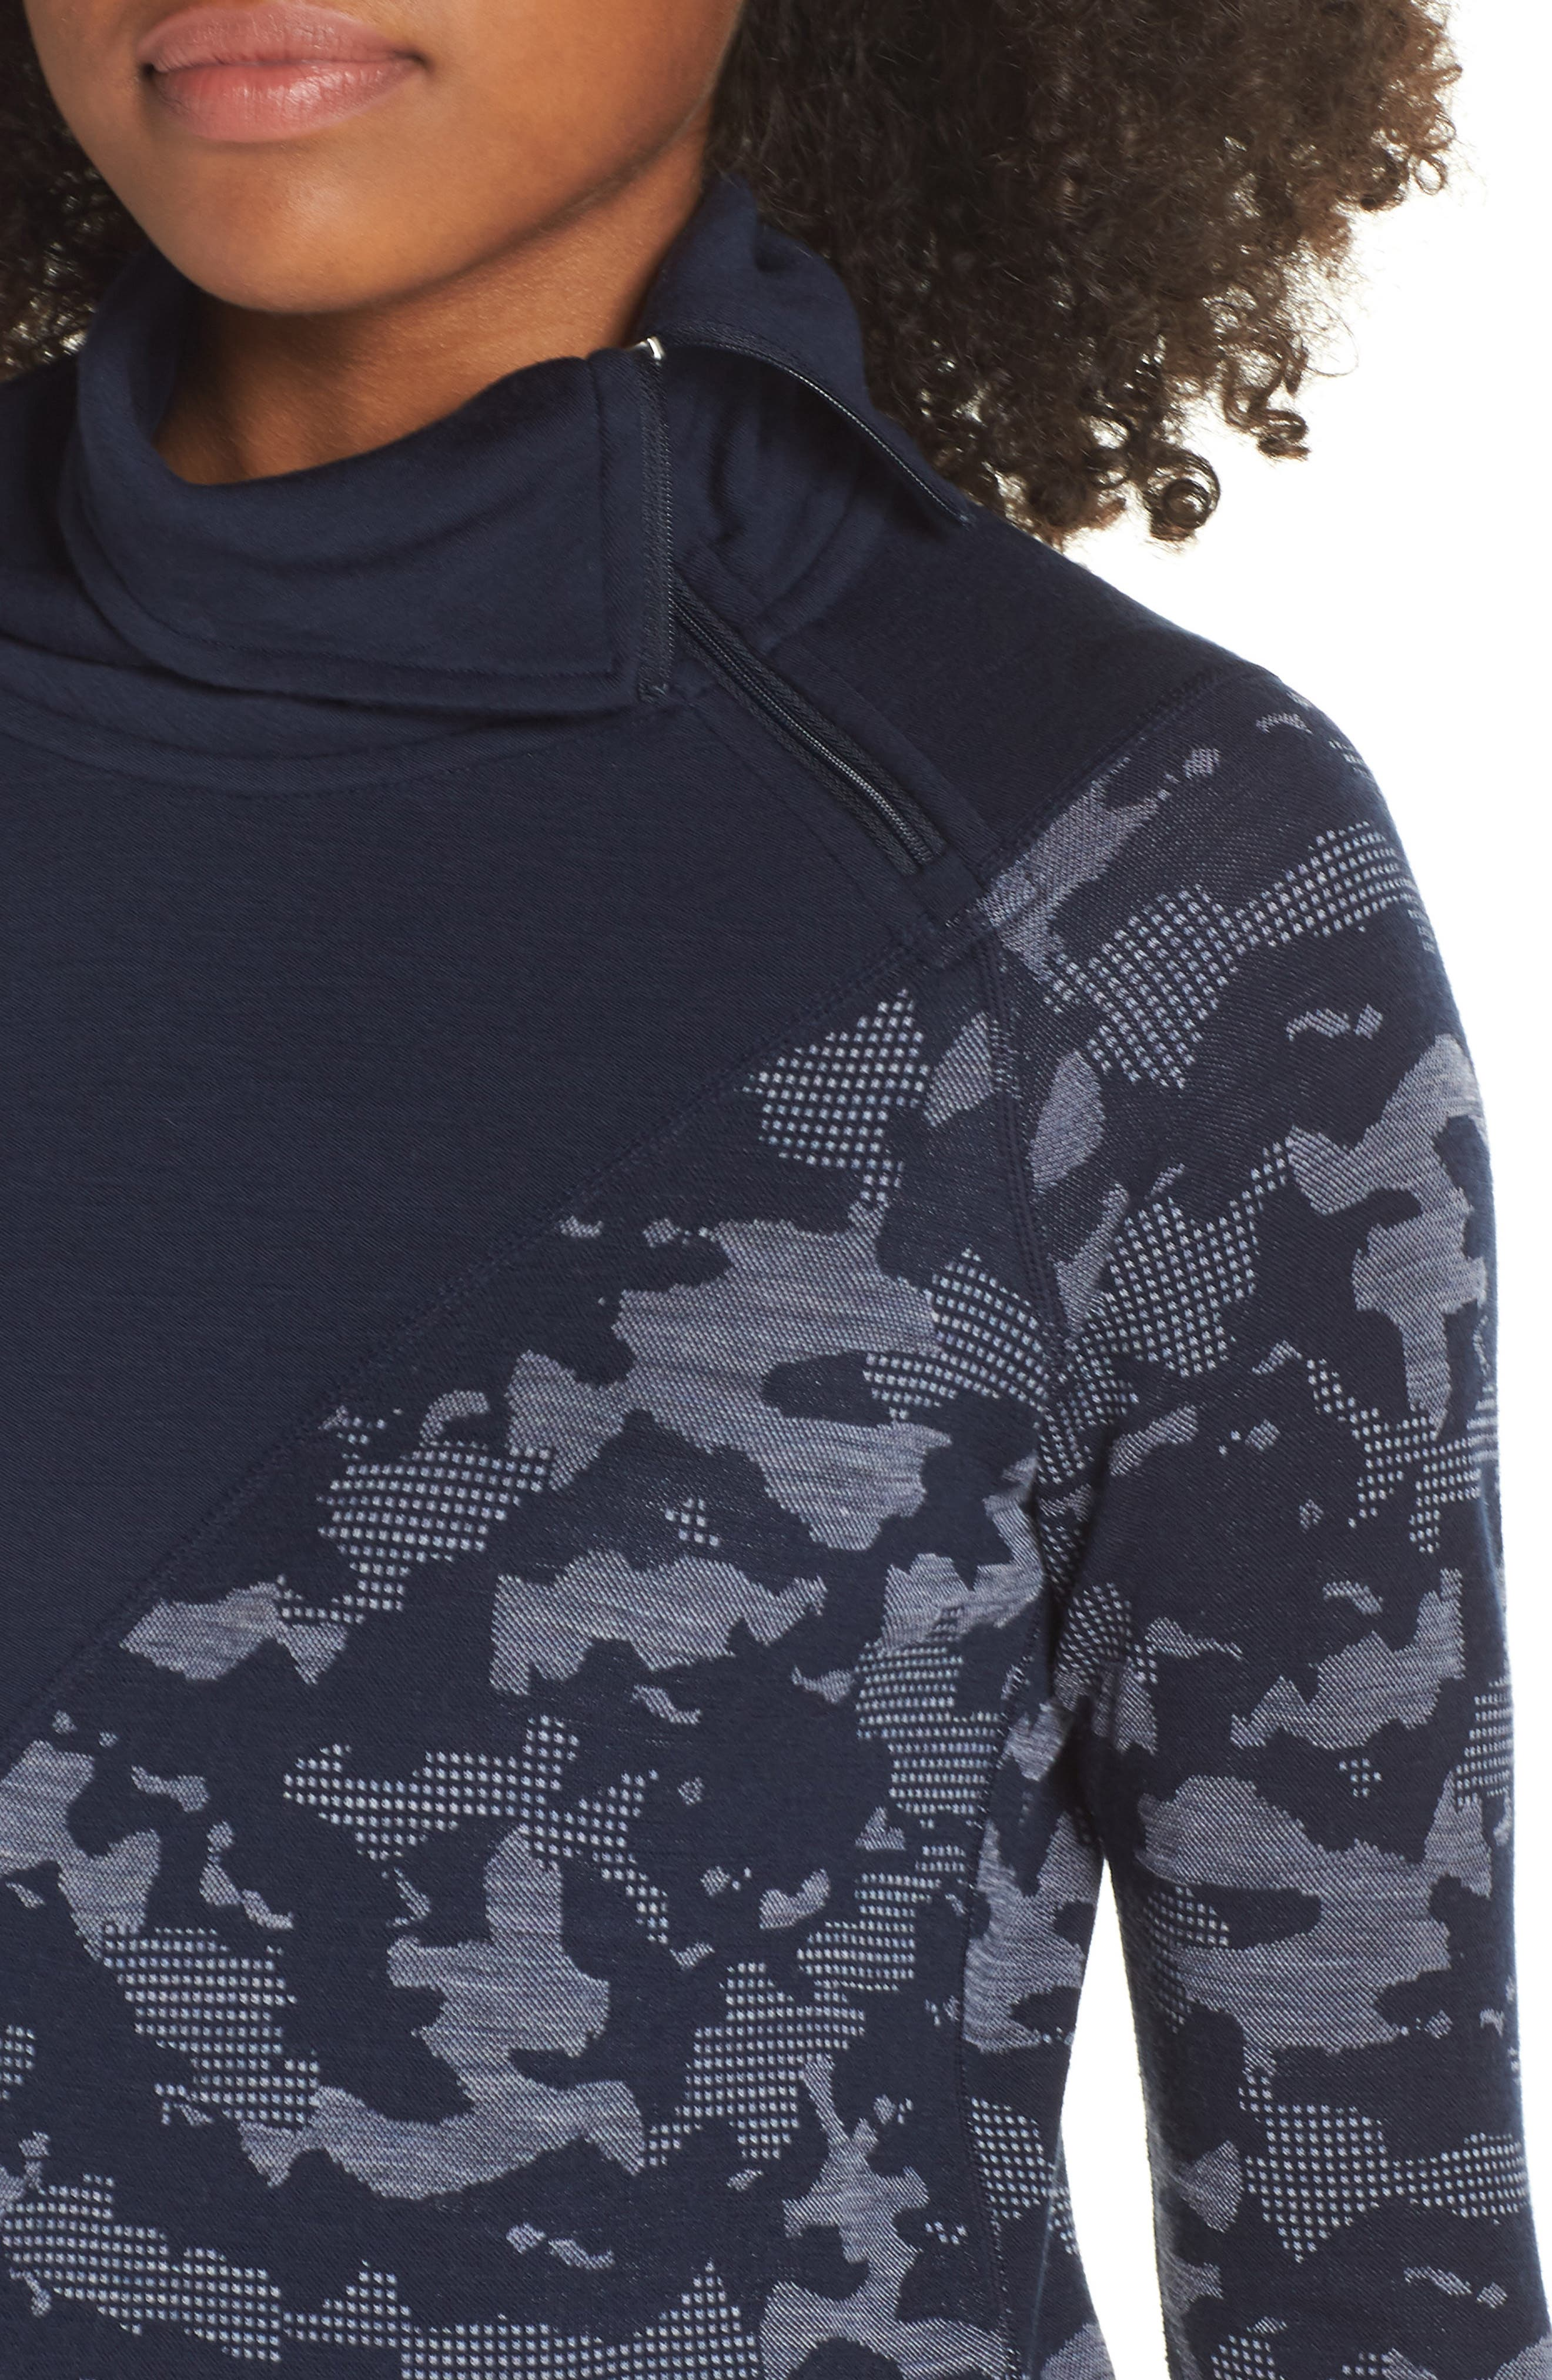 Merino 250 Asymmetrical Zip Top,                             Alternate thumbnail 4, color,                             410